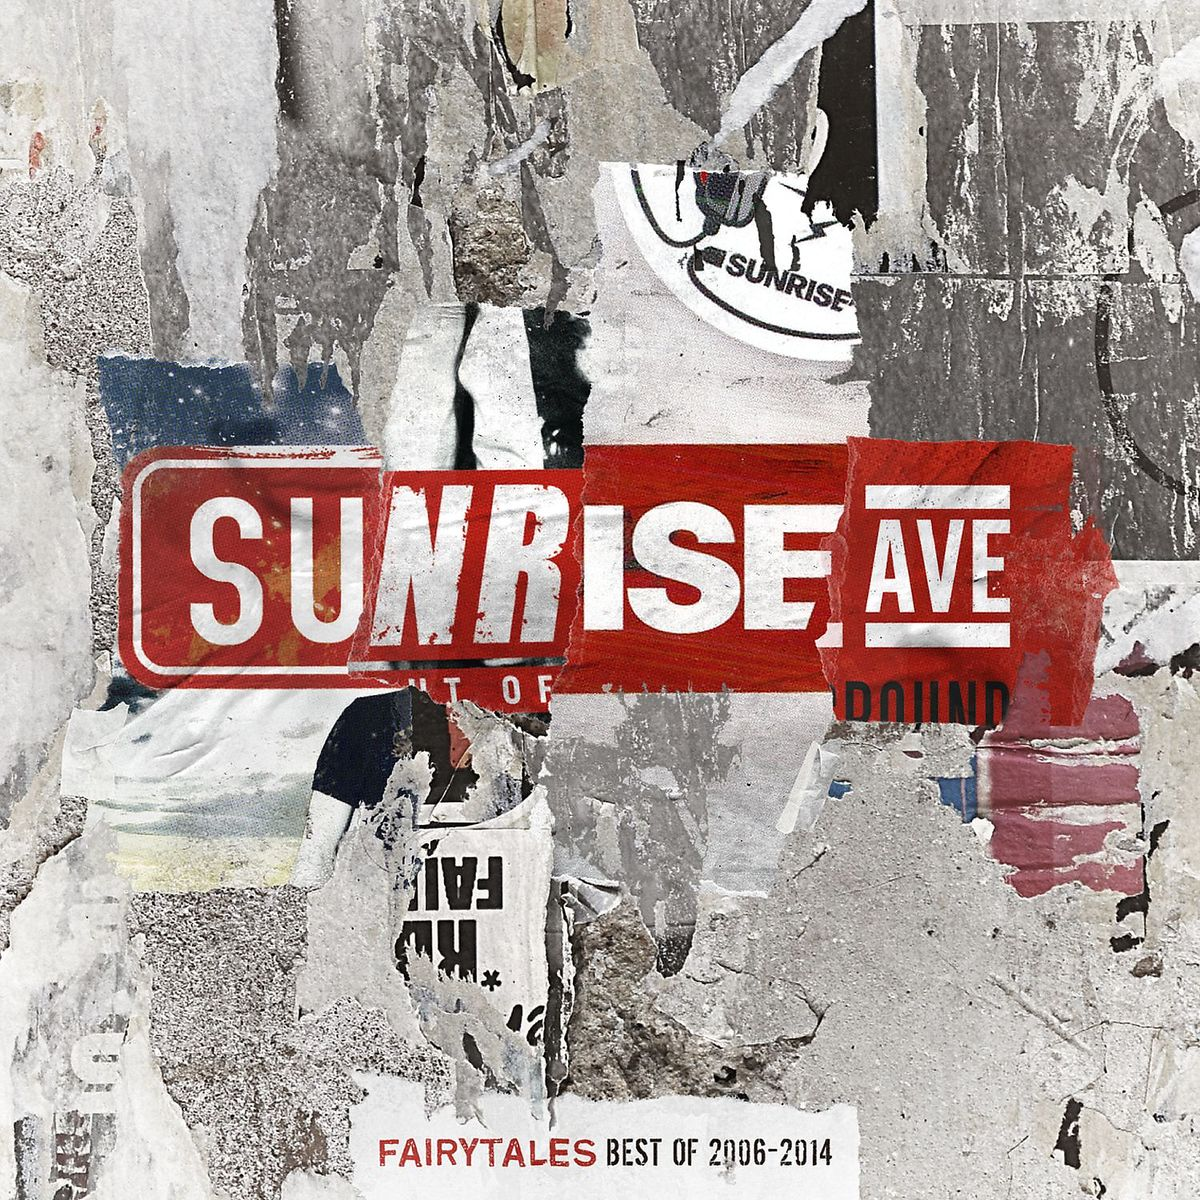 √Fairytales-Best Of 2006-2014 von Sunrise Avenue - CD jetzt im Sunrise Avenue Shop